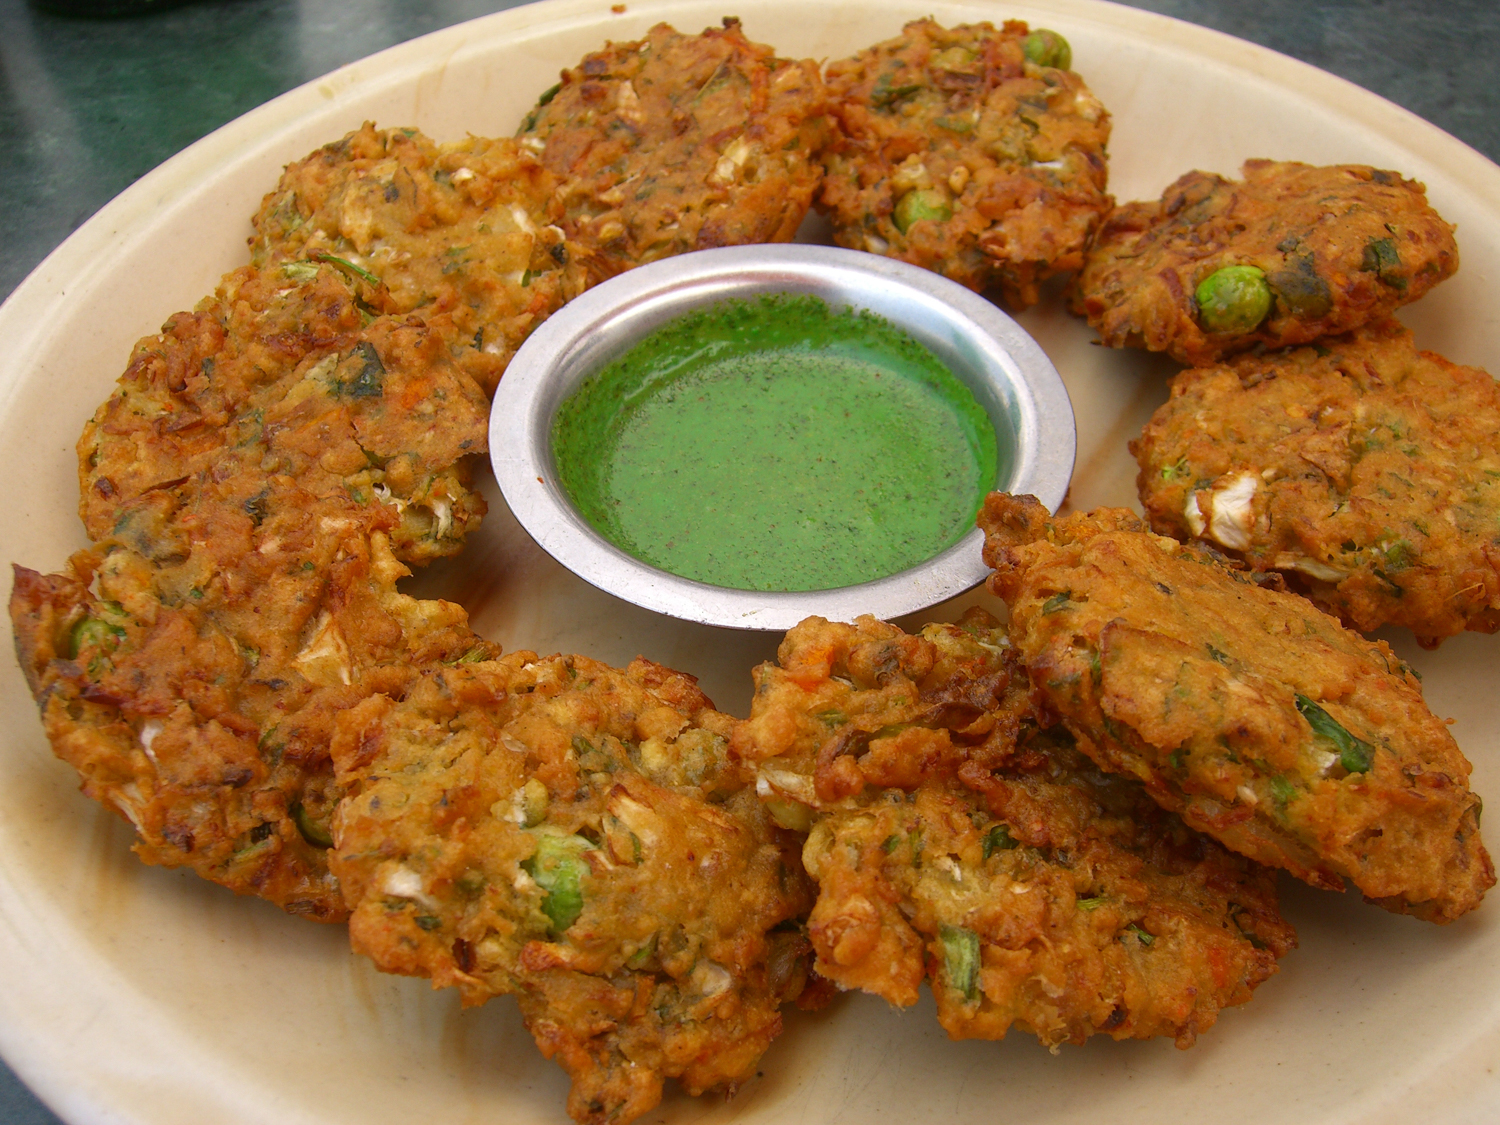 5 Amazing Cannabis Delicacies Straight From the Heart of India 1 of 6 5 mouthwatering cannabis delicacies from India